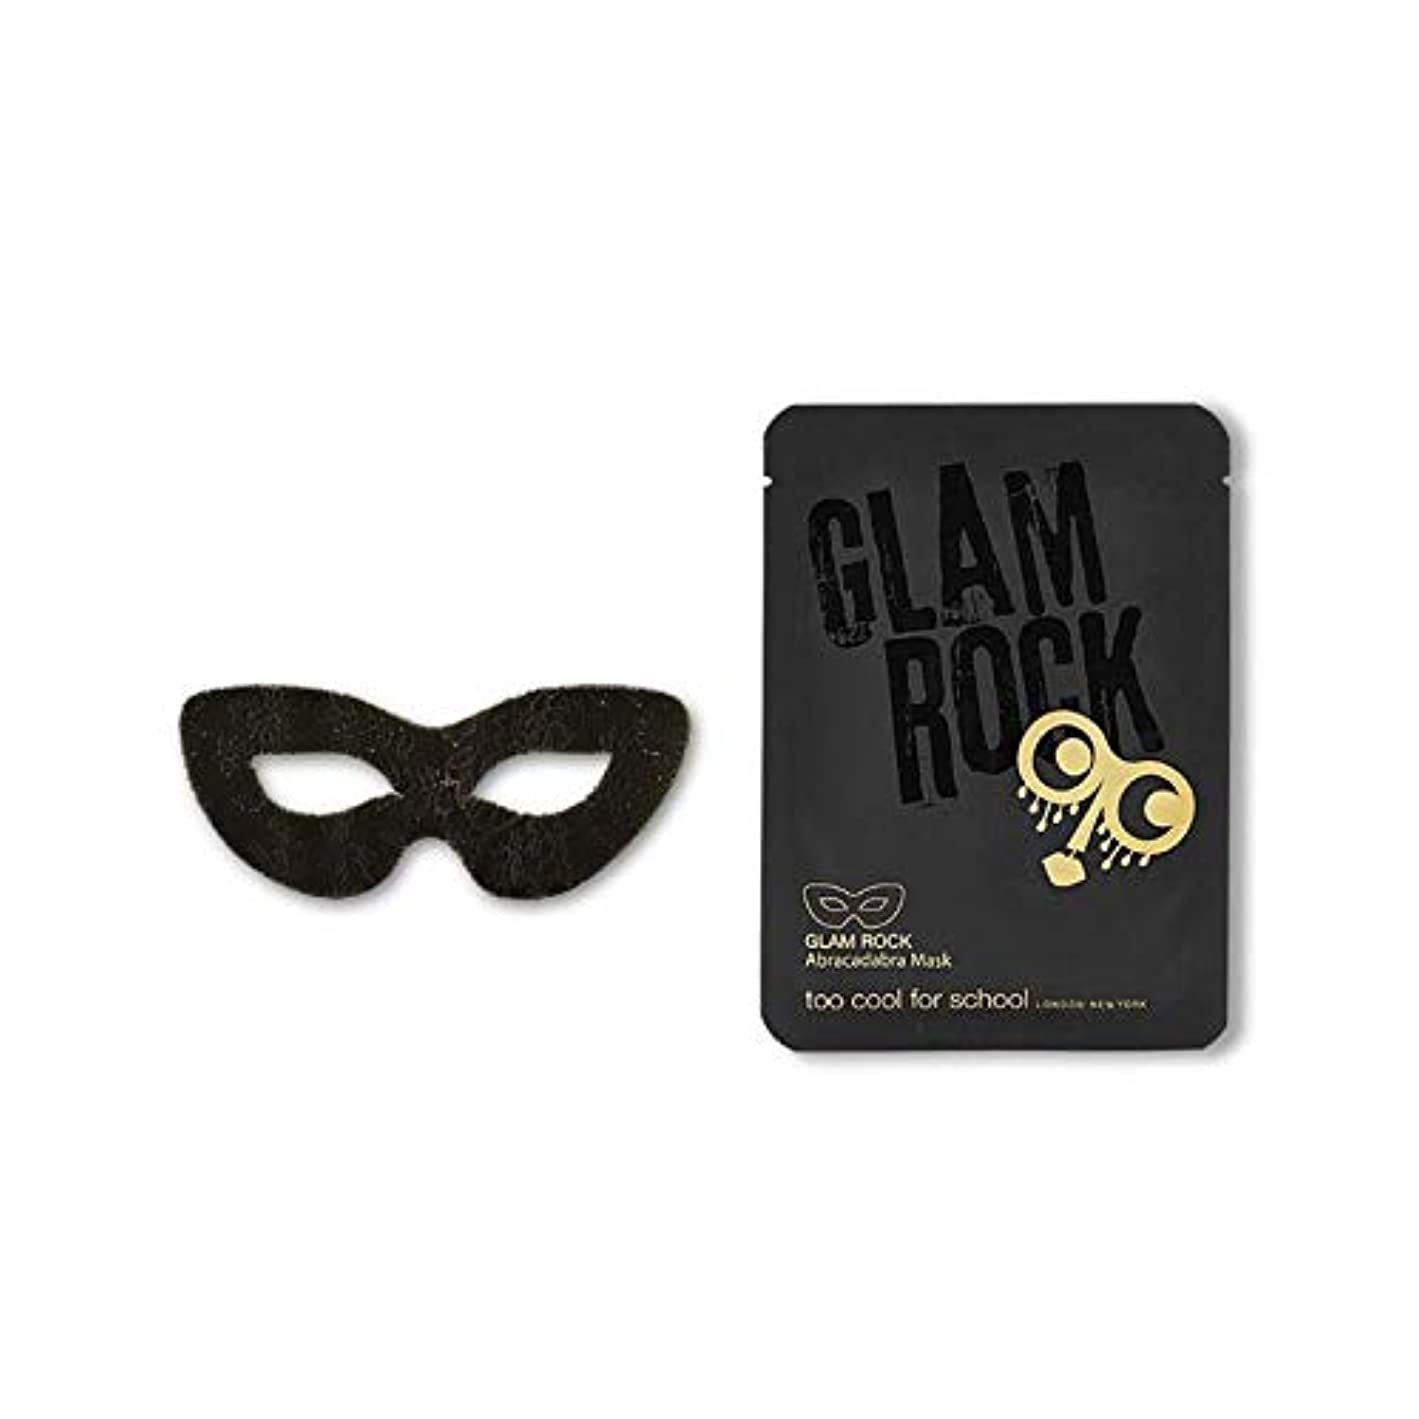 電気的政府記述するTOO COOL FOR SCHOOL Glam Rock Abracadabra Mask (並行輸入品)